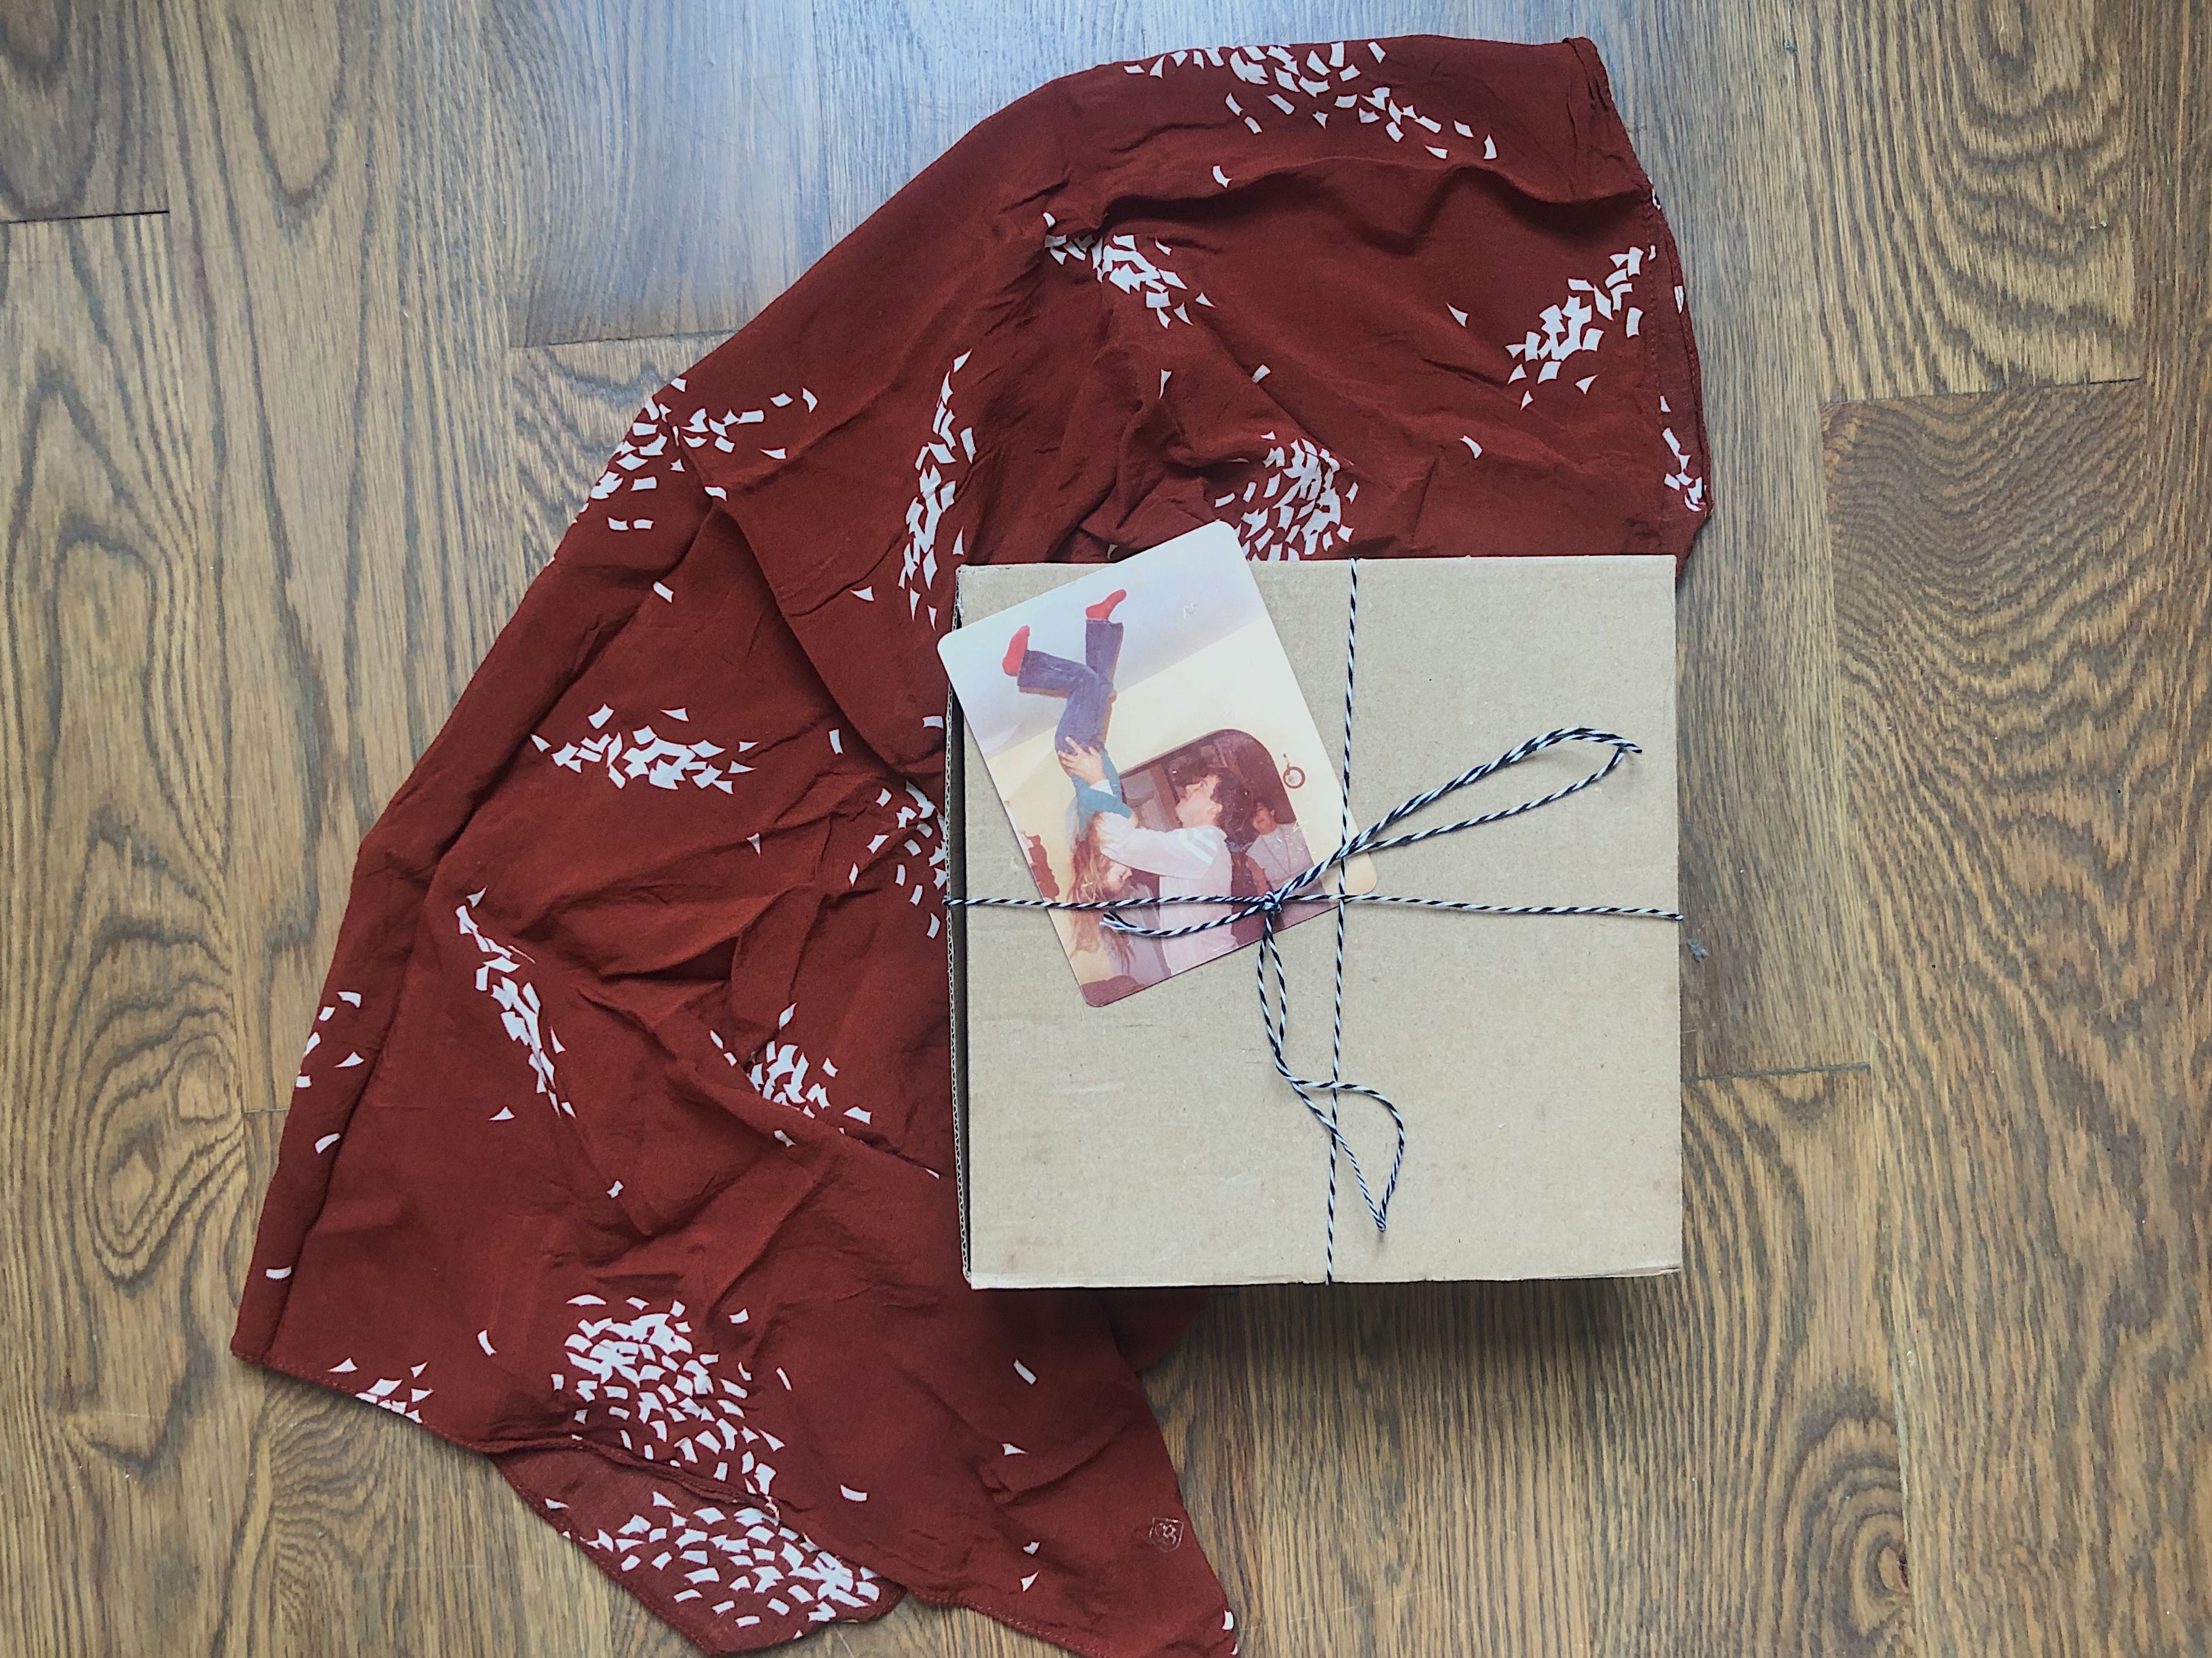 Make a lasting impression with this gift wrapping idea using photo prints